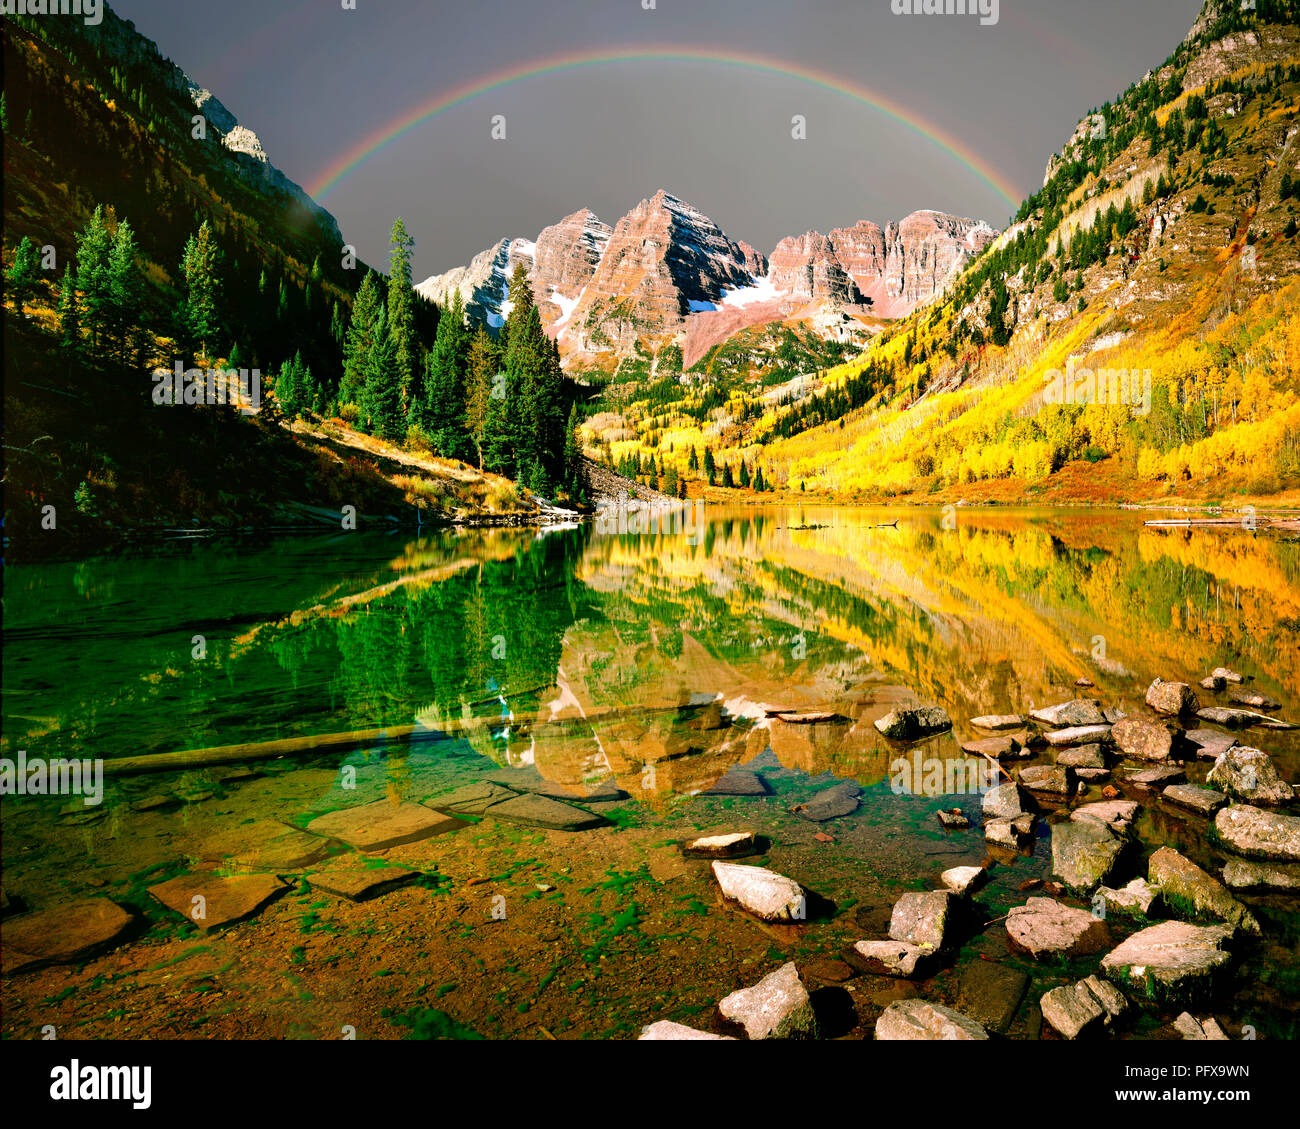 USA - COLORADO: Maroon Lake and Maroon Bells in the Rocky Mountains - Stock Image